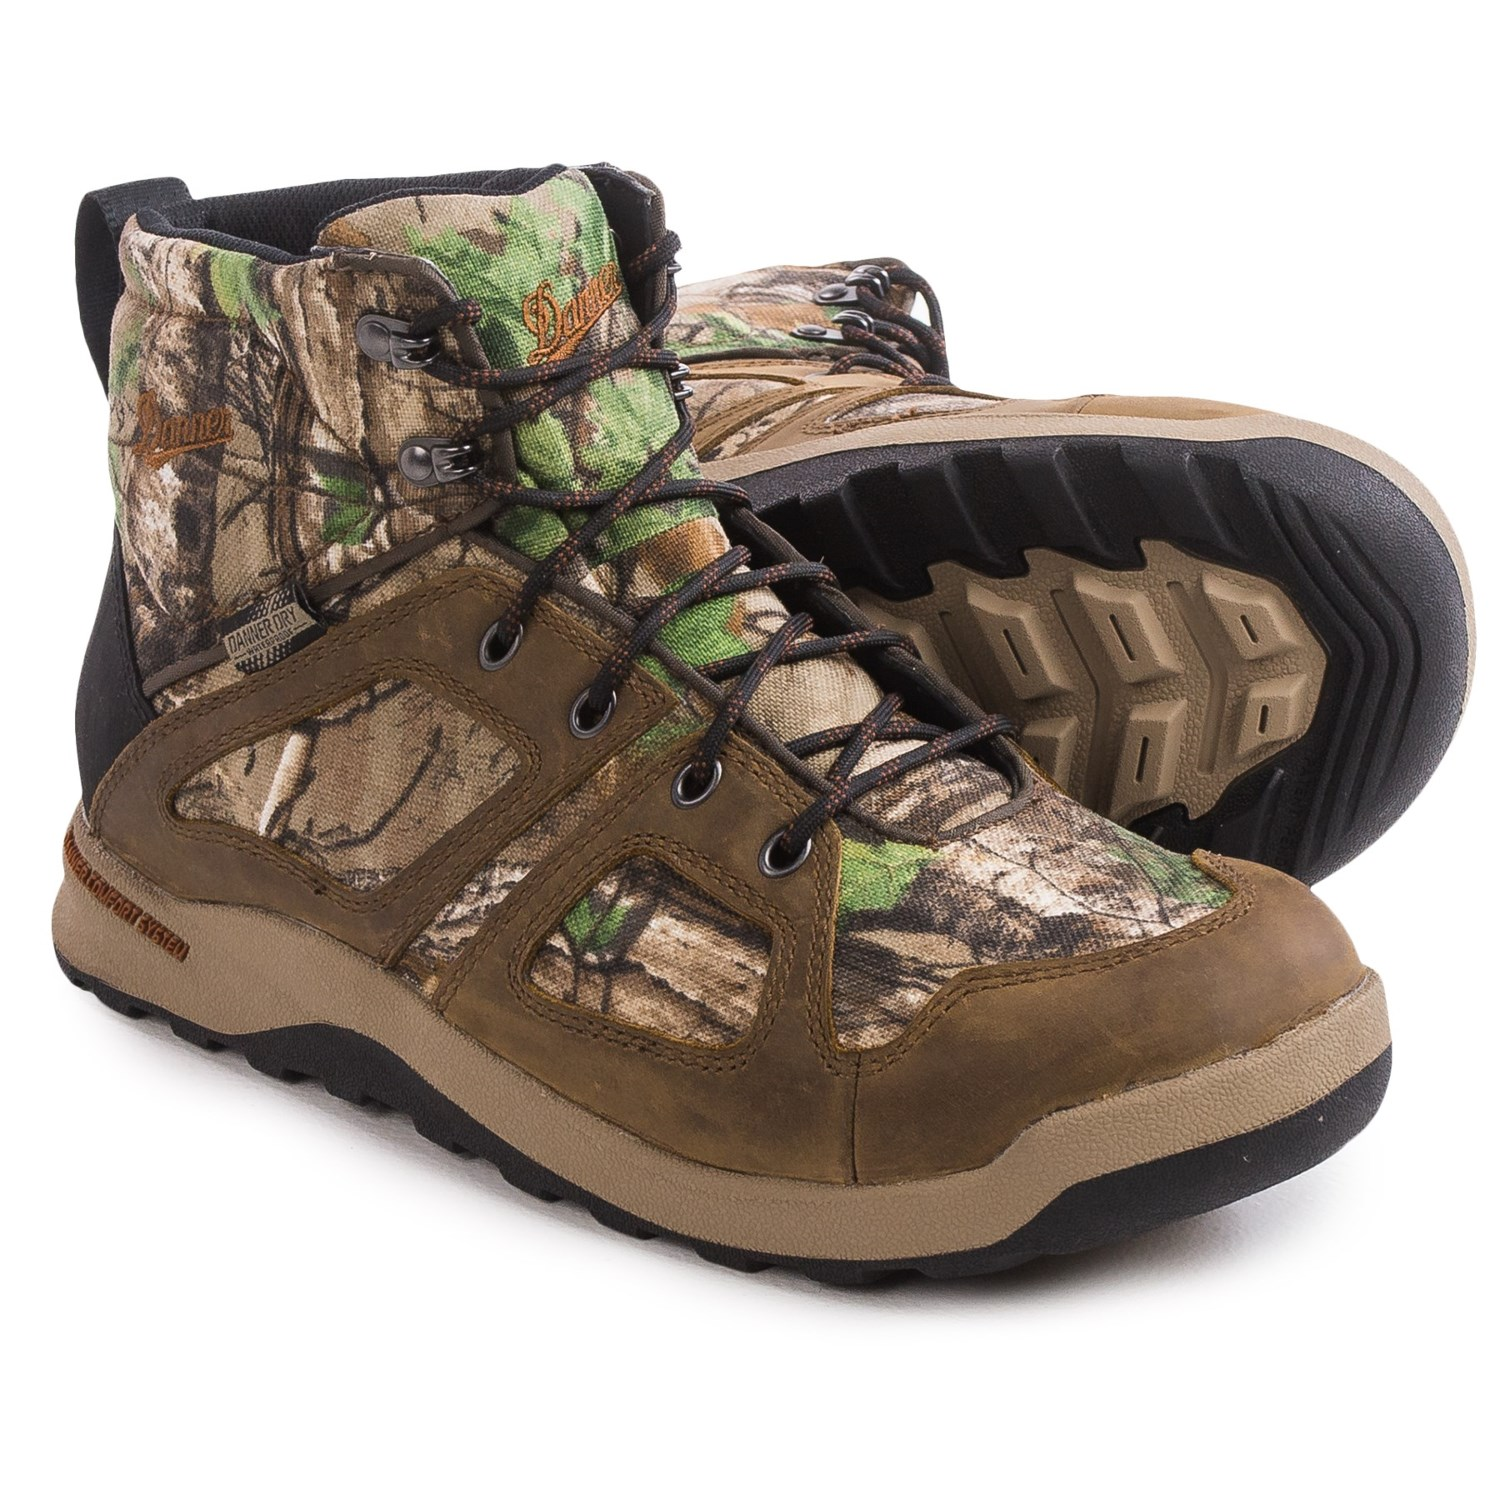 "Customer Reviews of Danner 6"" Steadfast Hunting Boots - Waterproof ..."